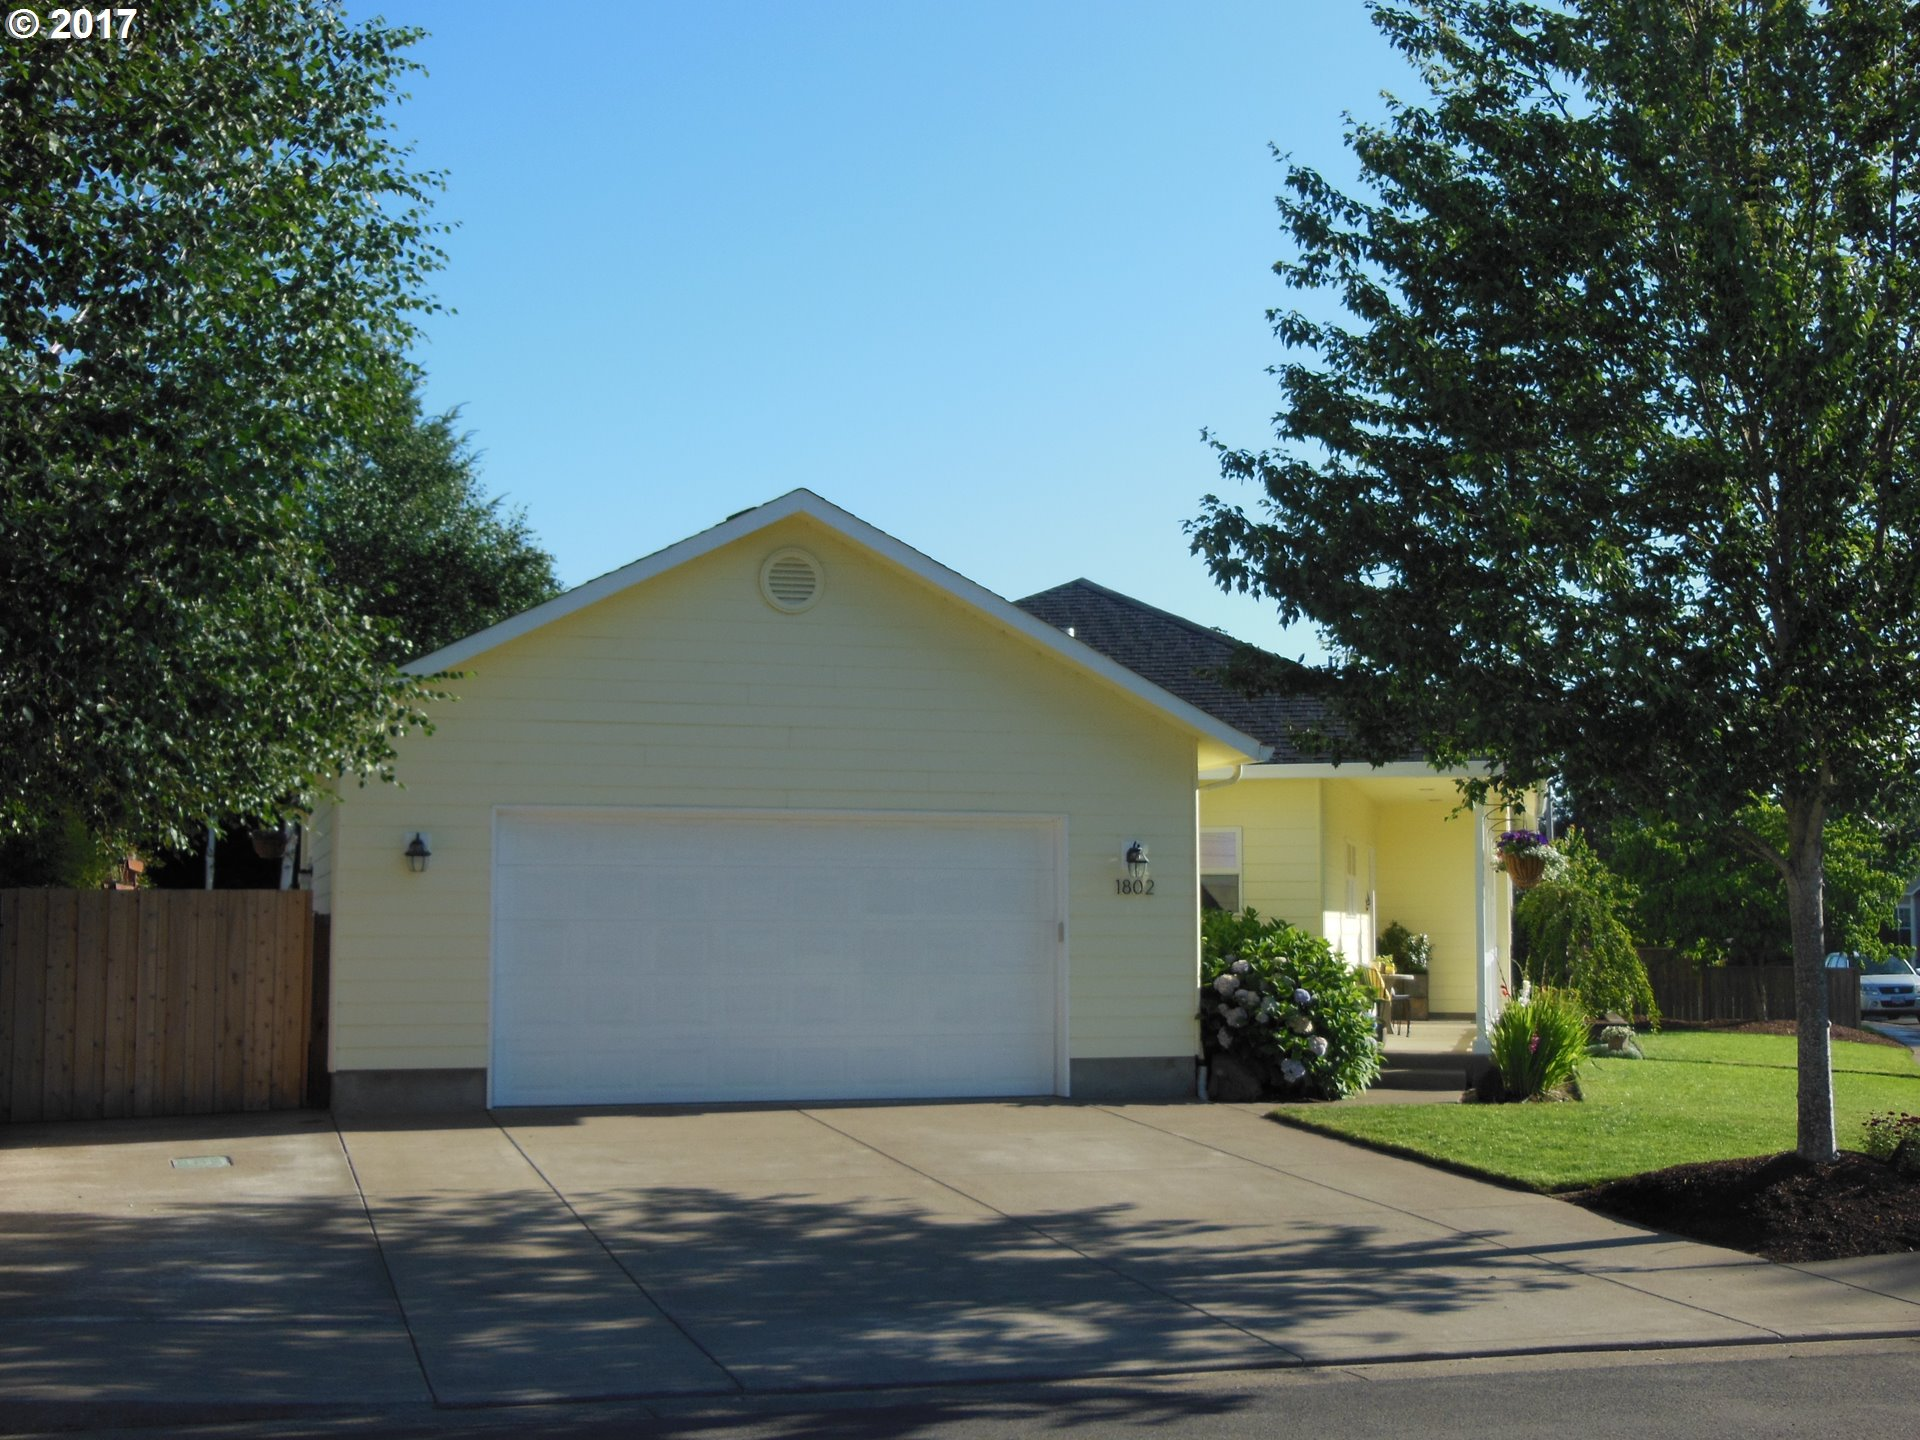 1802 W 11TH AVE, Junction City, OR 97448